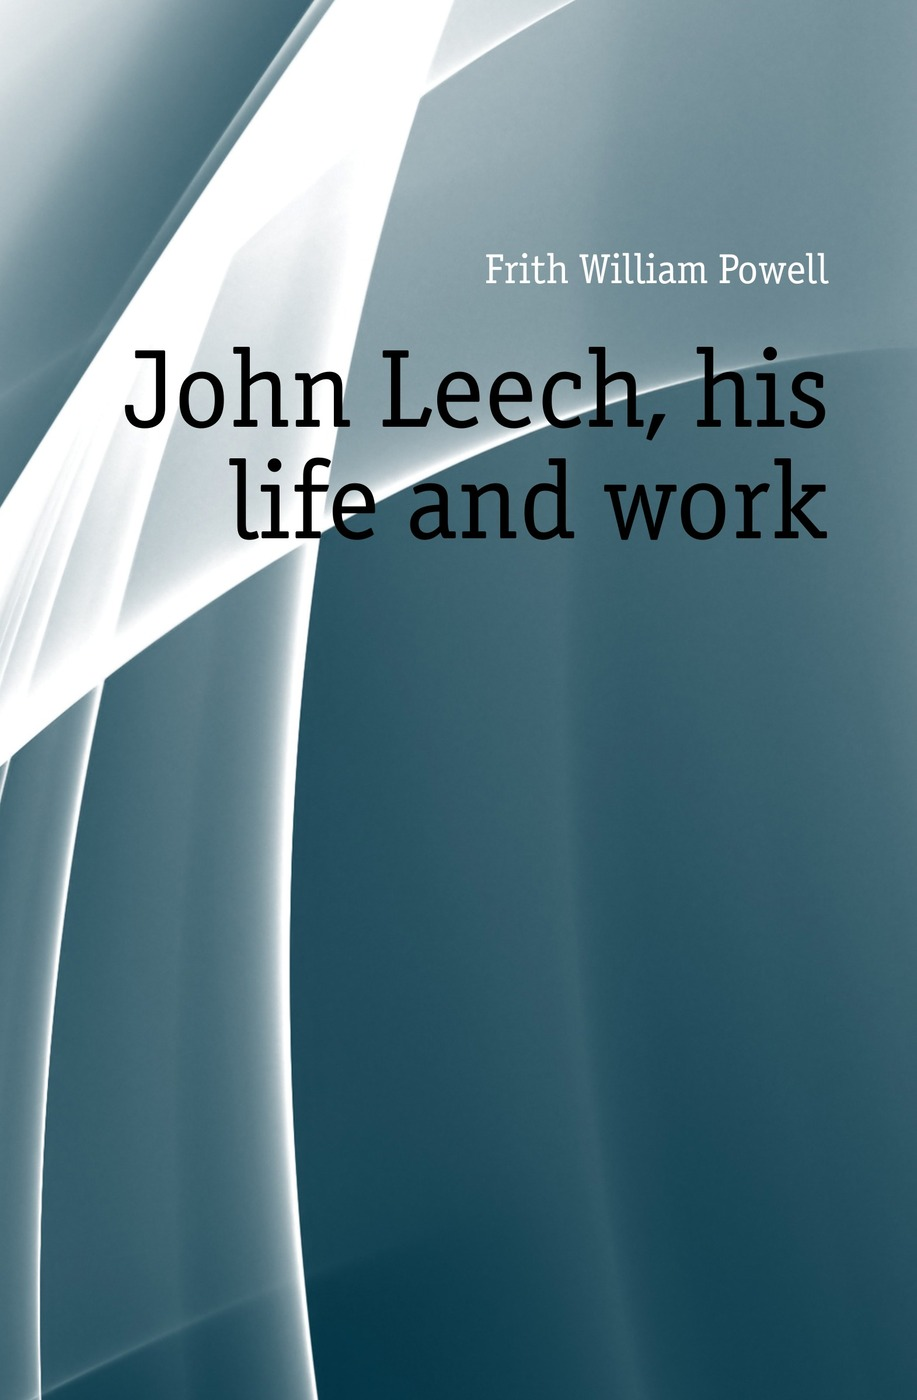 Frith William Powell John Leech, his life and work frith william powell john leech his life and work vol 1 [of 2]